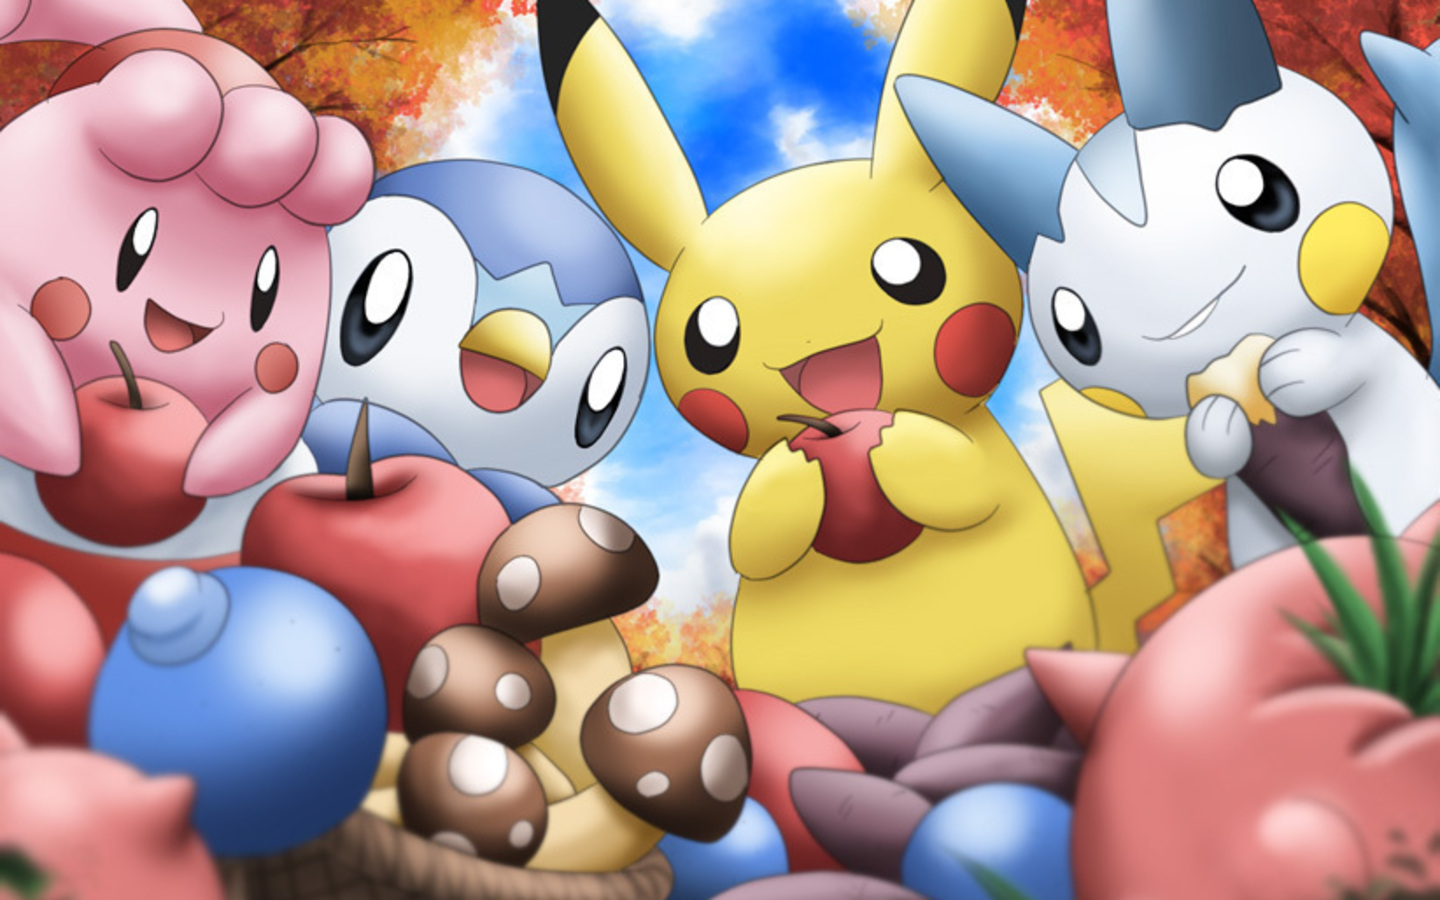 Cute Pokemon Free Desktop Wallpaper